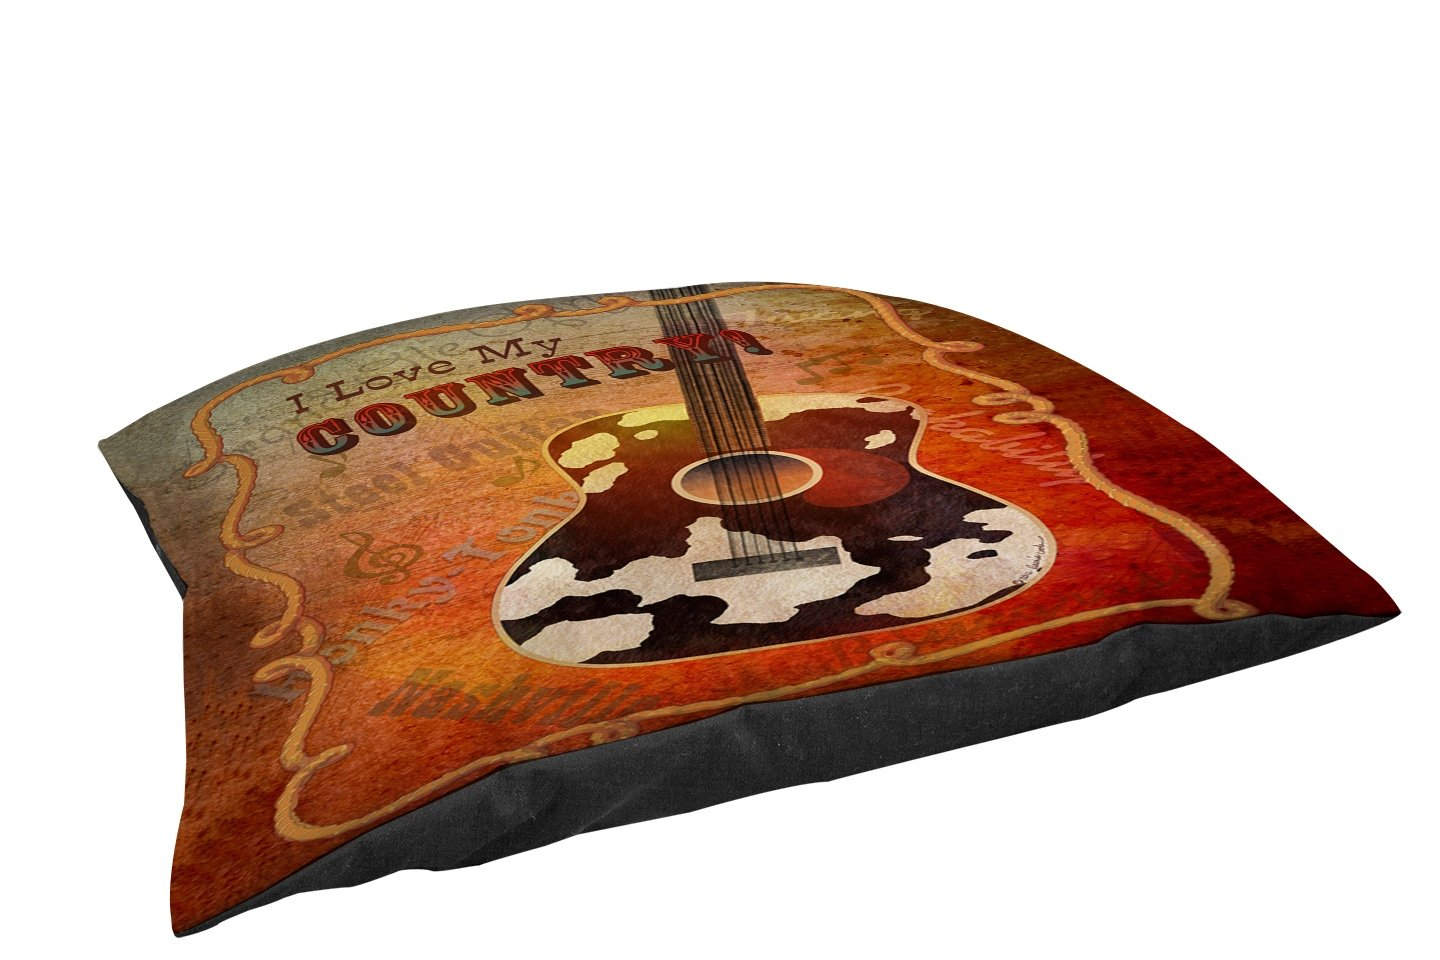 Manual Woodworkers & Weavers Fleece Top Toy or Small Breed Pet Bed, Guitar, Multi colord